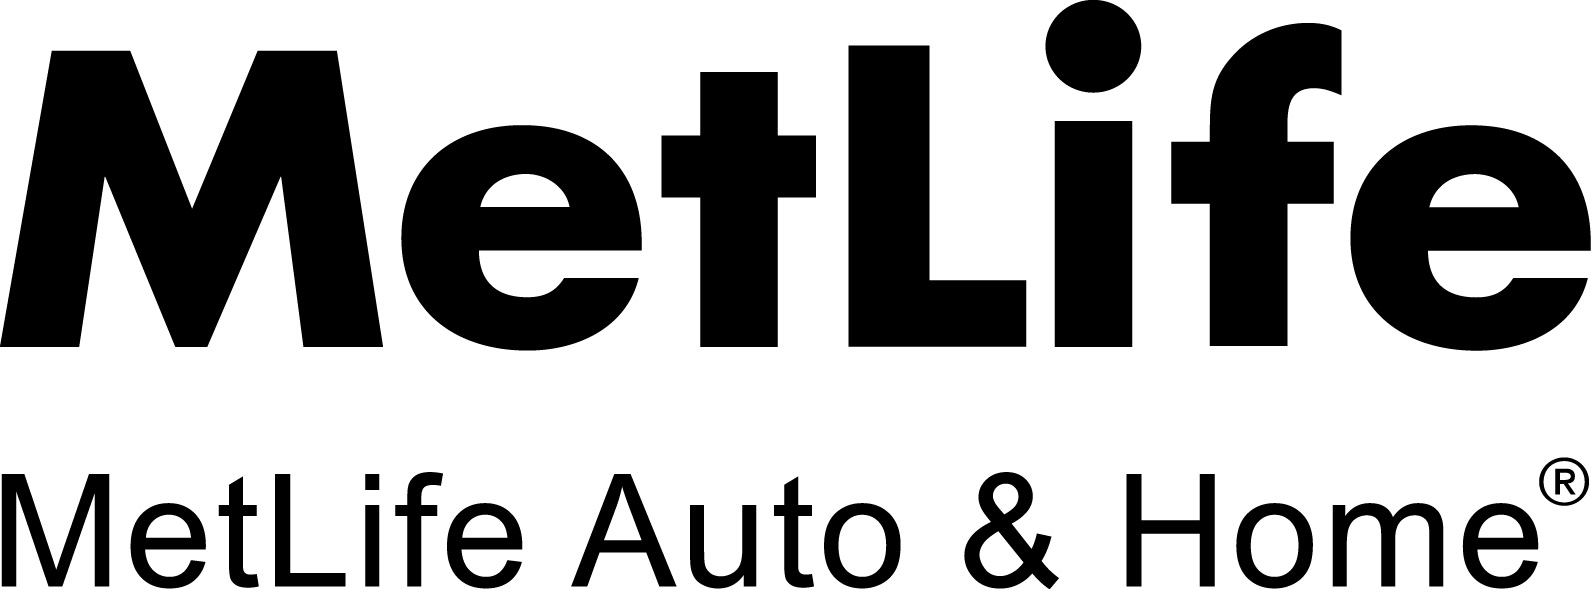 Metlife Life Insurance Quote Metlife Auto & Home  Dekok Insurance Group Inc.